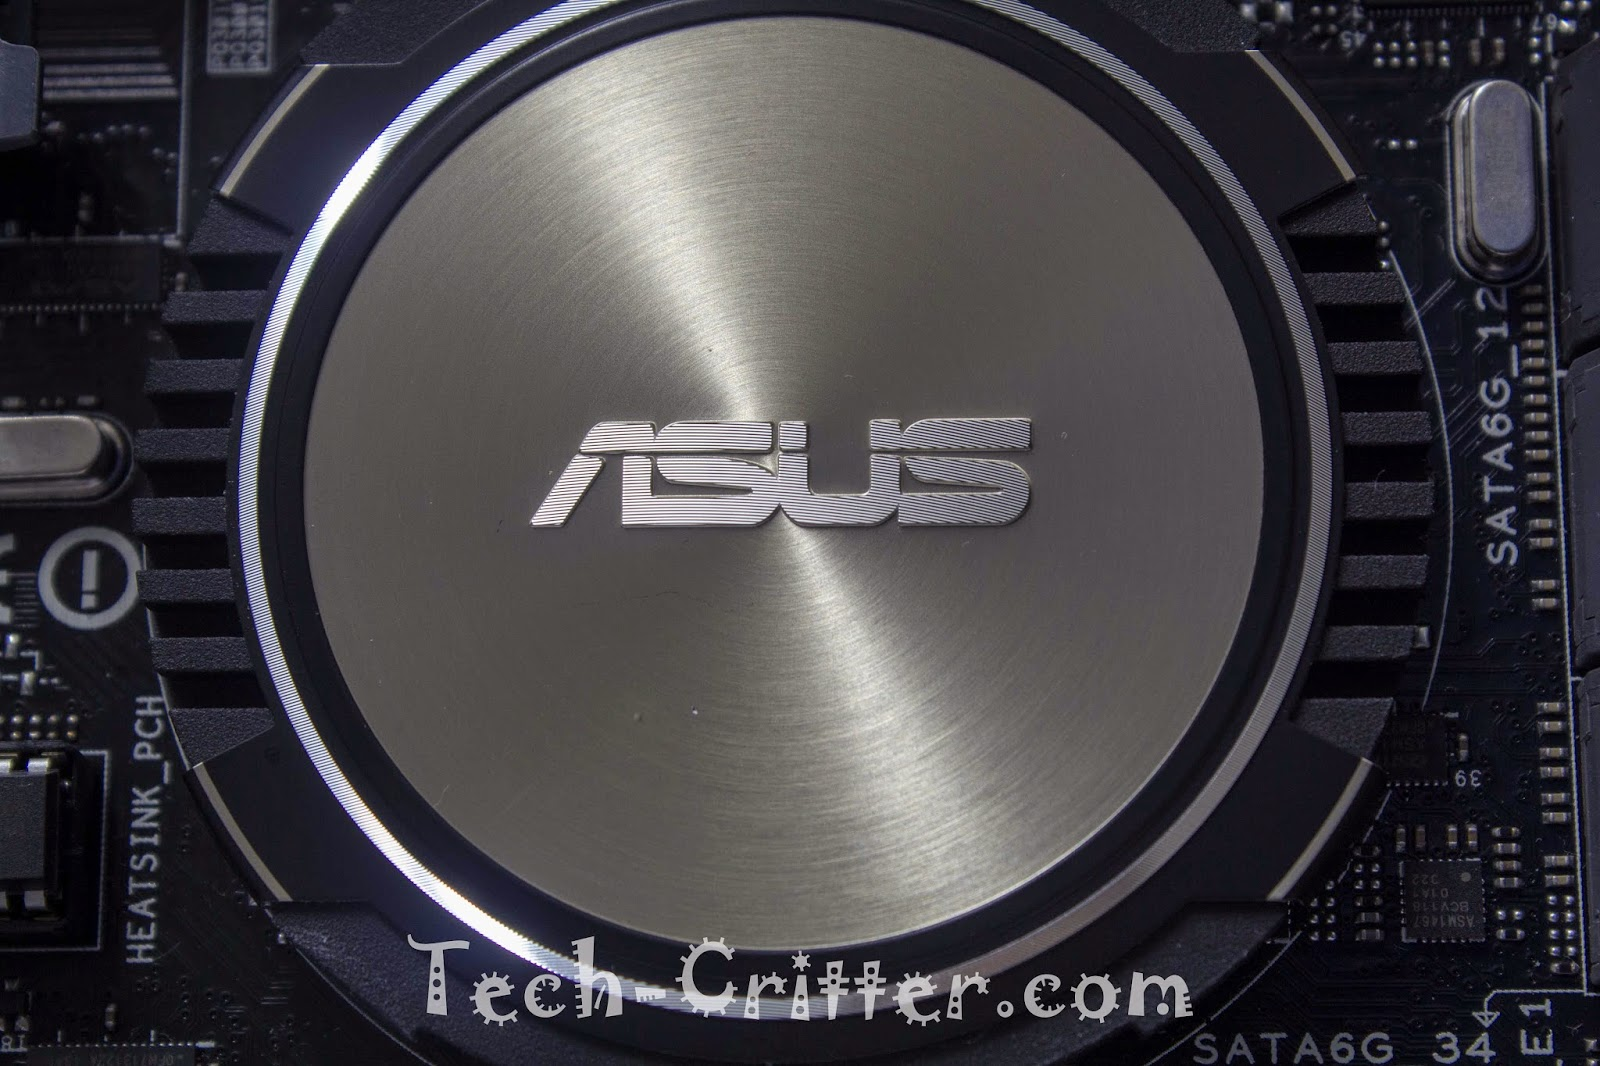 Unboxing & Review - ASUS Z97-Deluxe 173